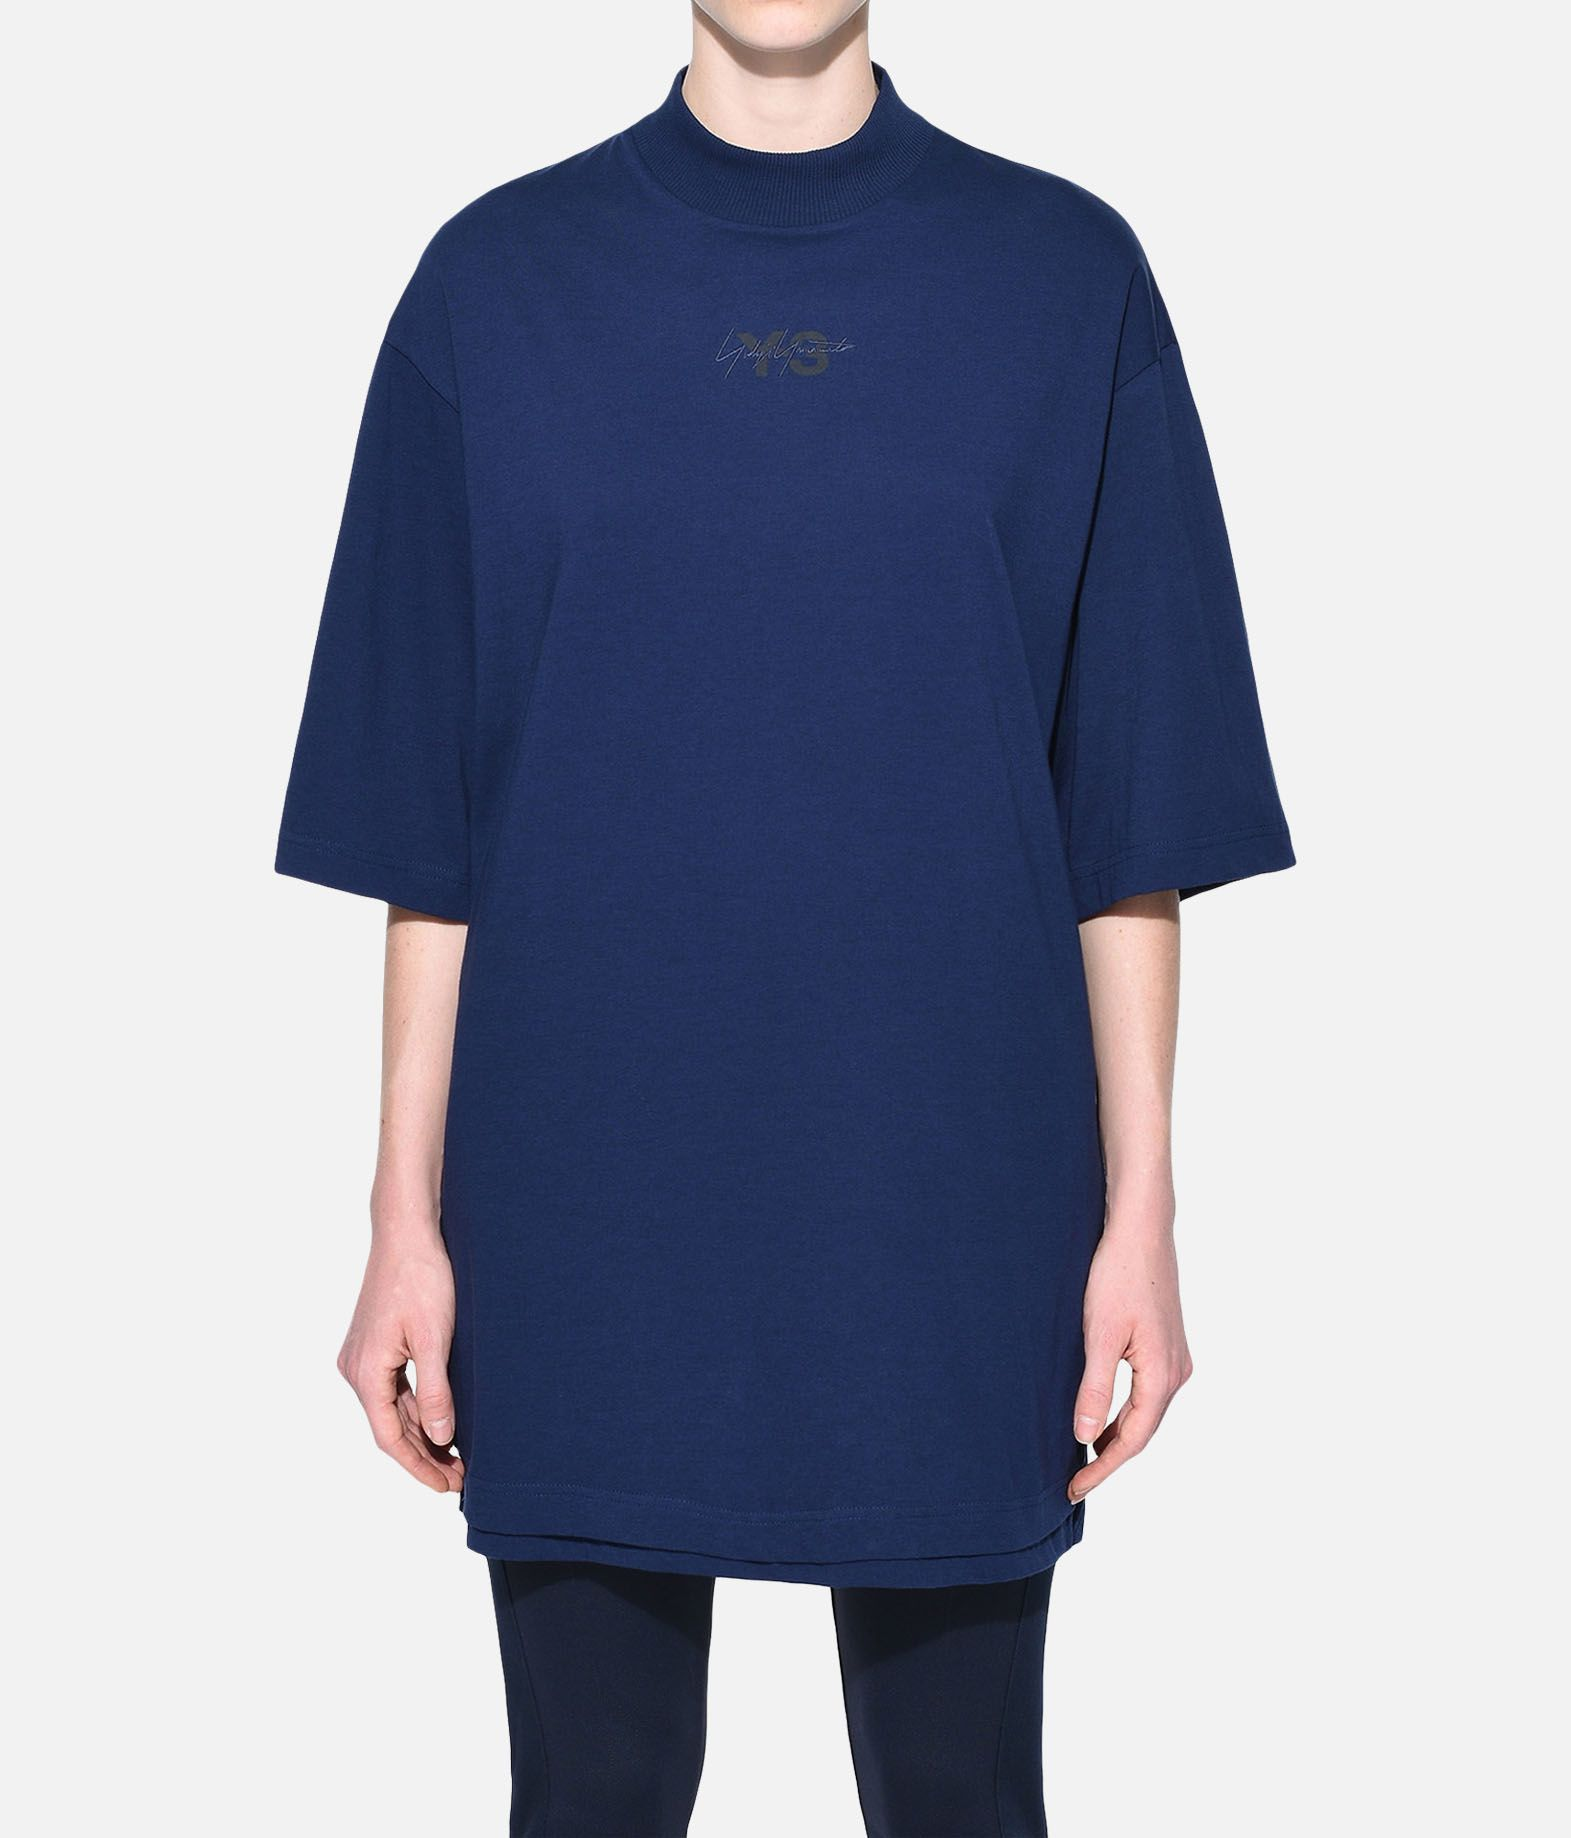 Y-3 Y-3 Signature Long Tee Short sleeve t-shirt Woman r